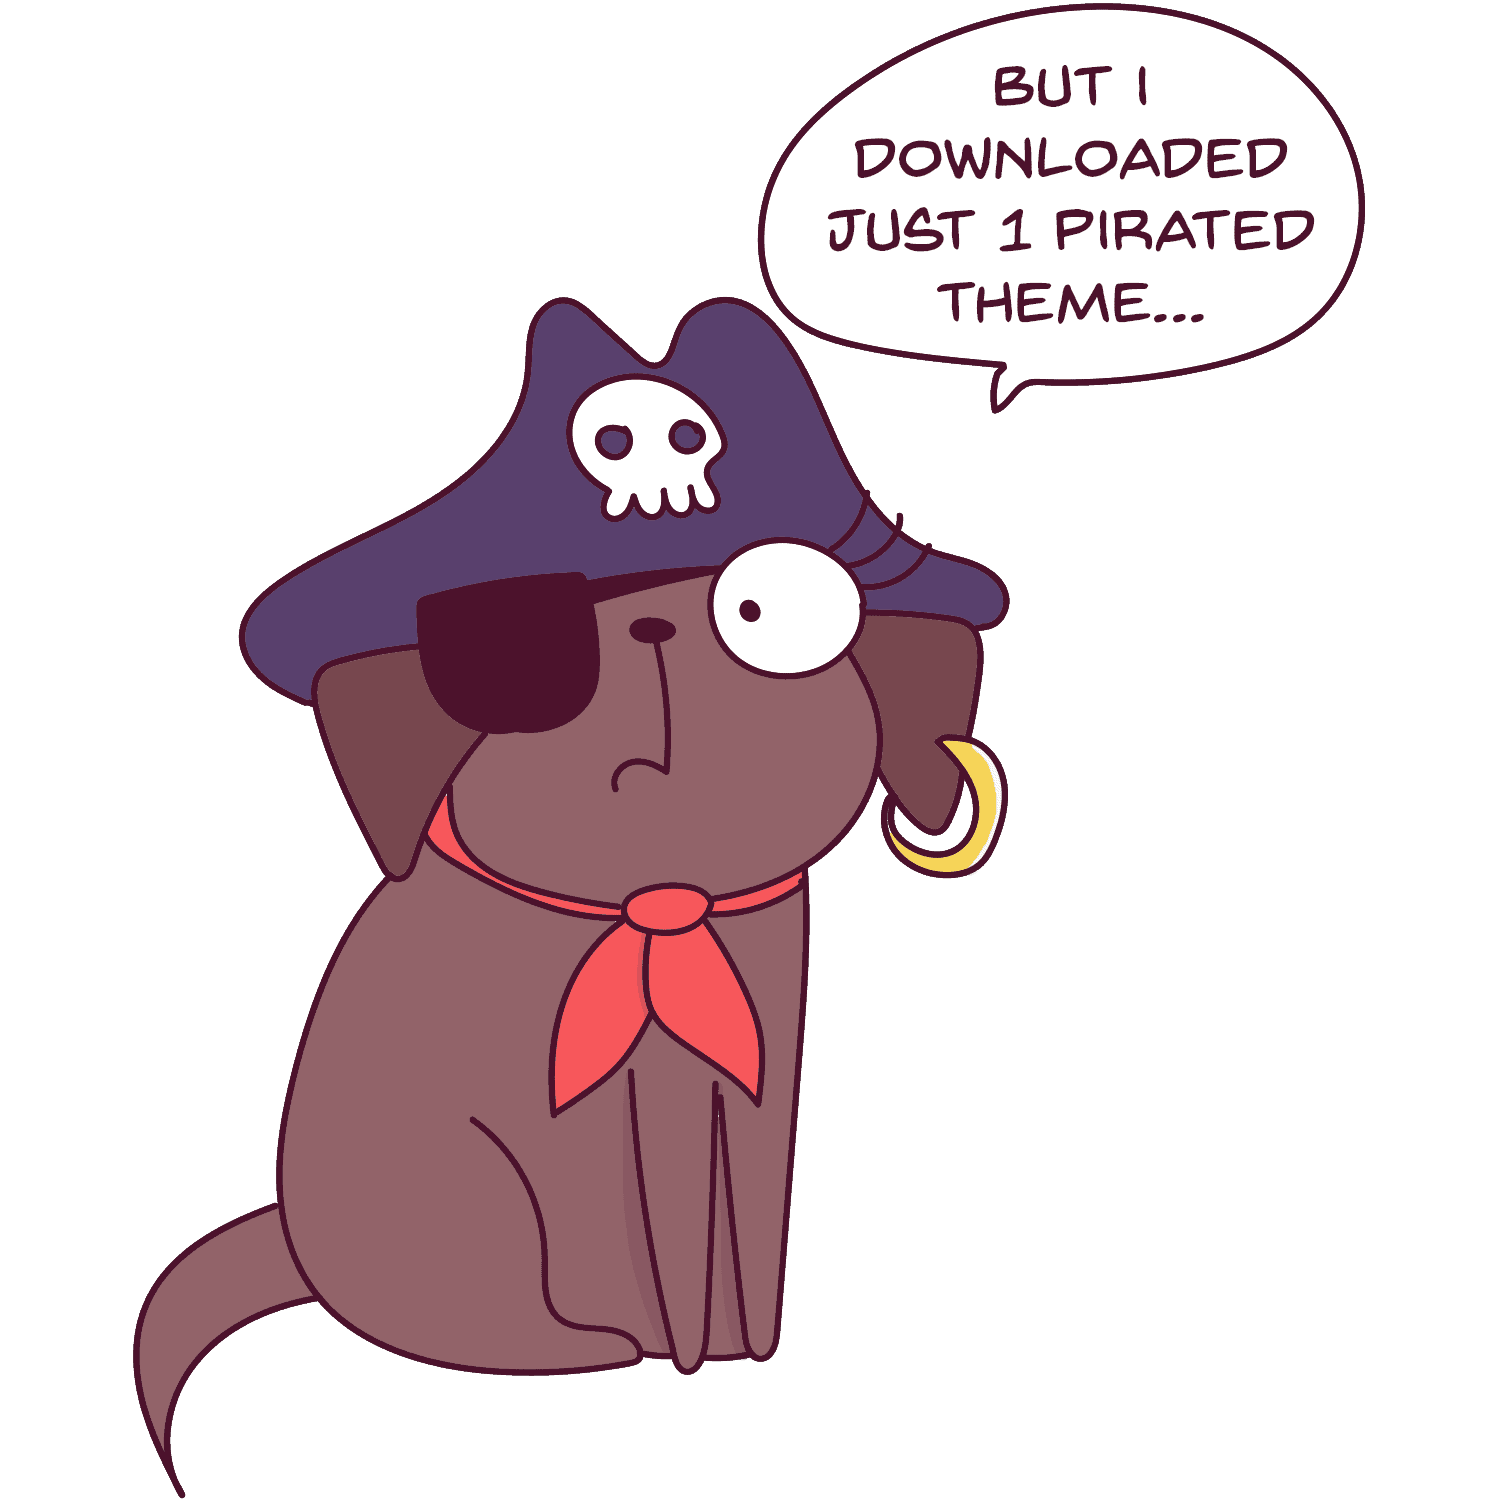 One of the biggest blogging mistakes you can make is downloading a pirated theme. This is such a bad idea, because not only is it illegal, but you will never get updates from the theme, which is important if you want to have a money-making blog.